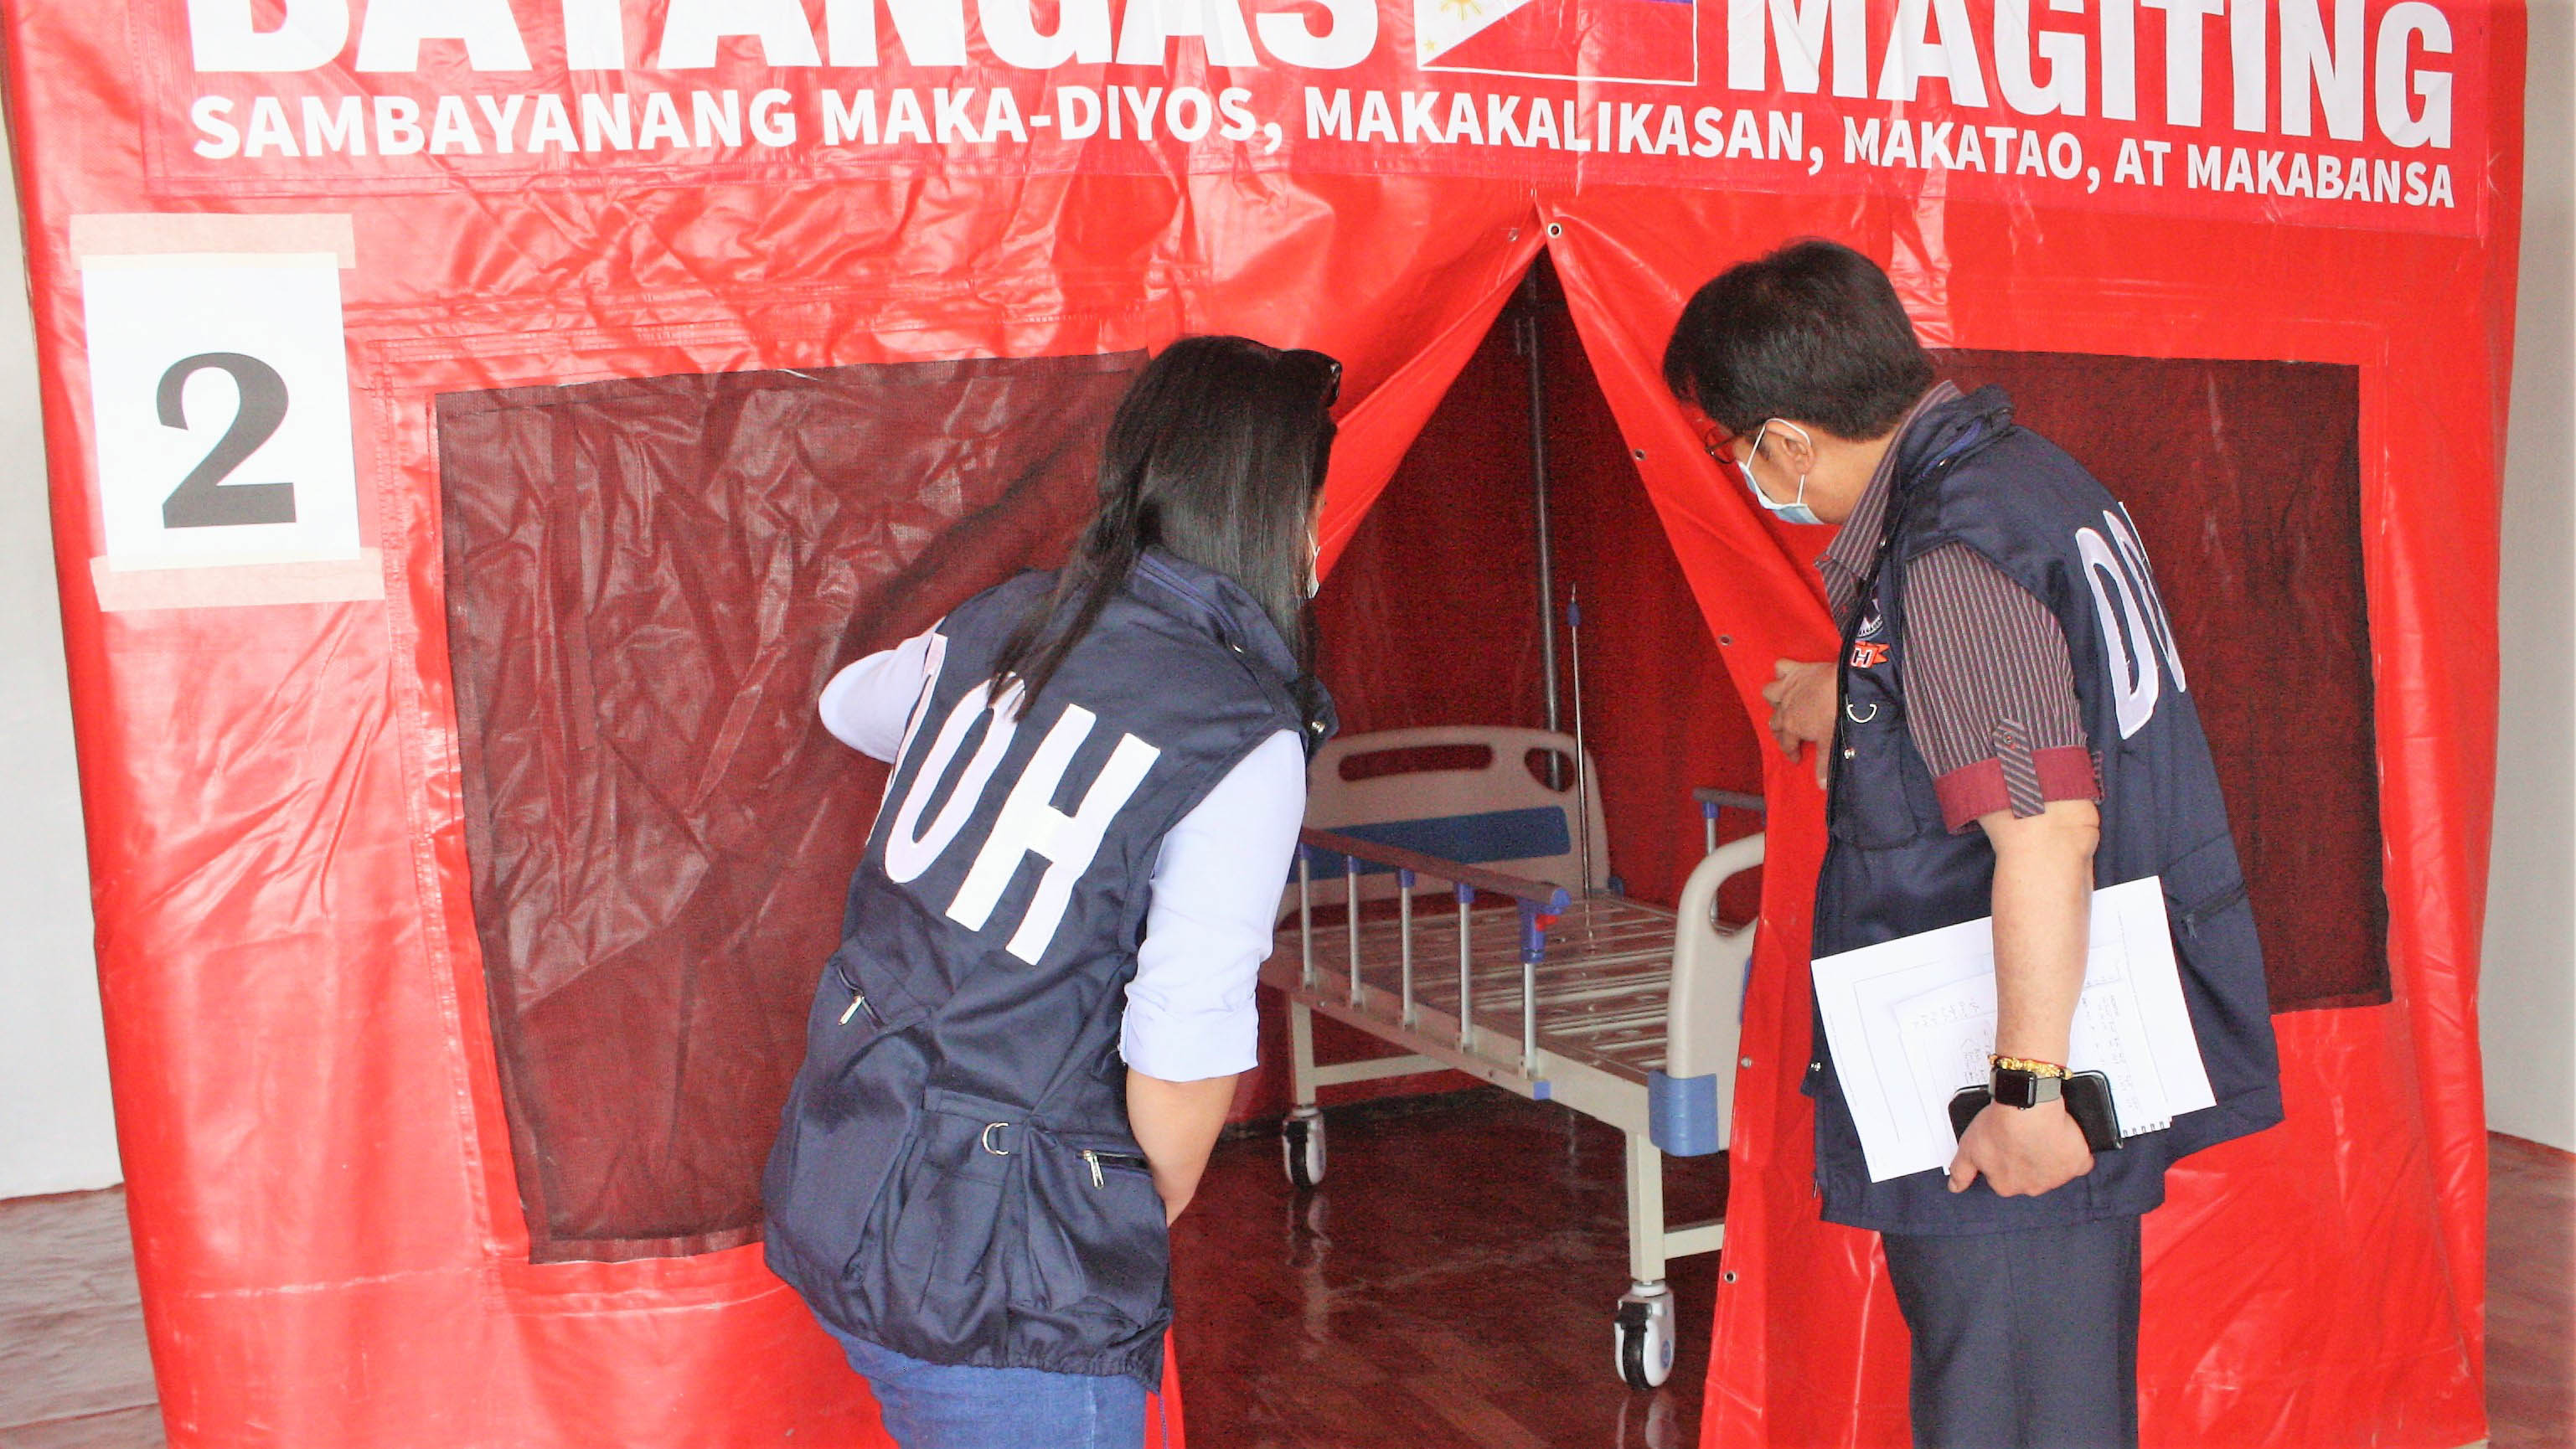 ISOLATION FACILITY. DOH-CALABARZON Regional Director Eduardo C. Janairo (left) inspects the inside of tent which will serve as an isolation unit for persons deprived of liberty who will be tested positive for COVID-19. The Batangas Provincial Isolation Facility is located at Brgy Malainin, Ibaan. Photo from DOH Calabarzon